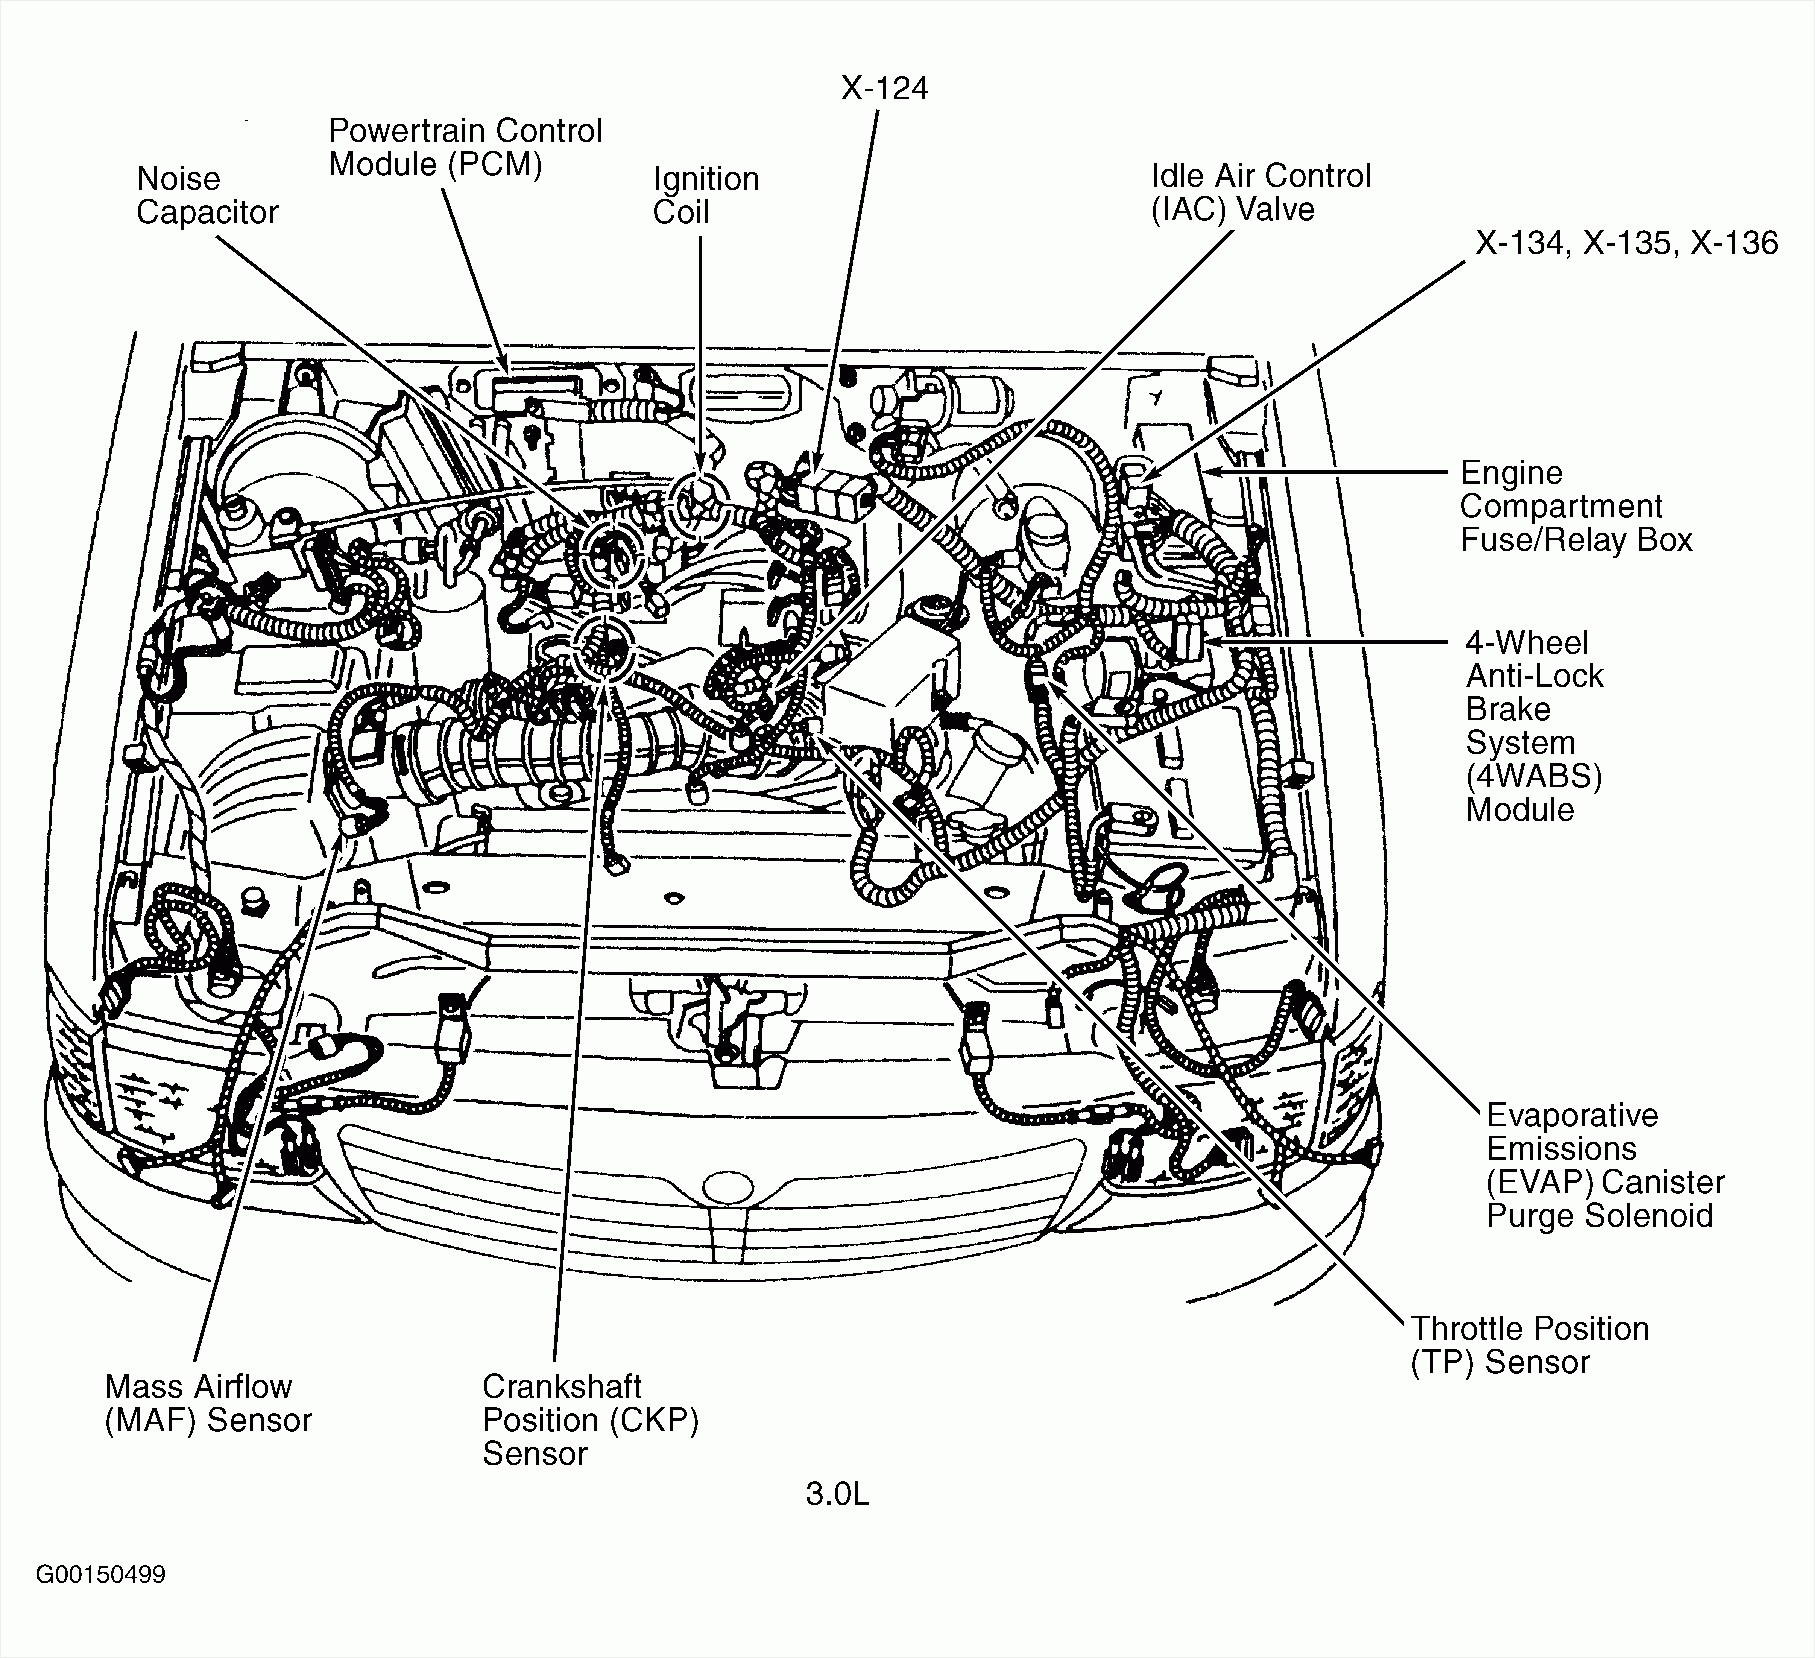 hight resolution of 1987 toyota corolla engine diagram wiring diagram operations 1993 toyota pickup cooling system as well 1987 toyota supra wiring